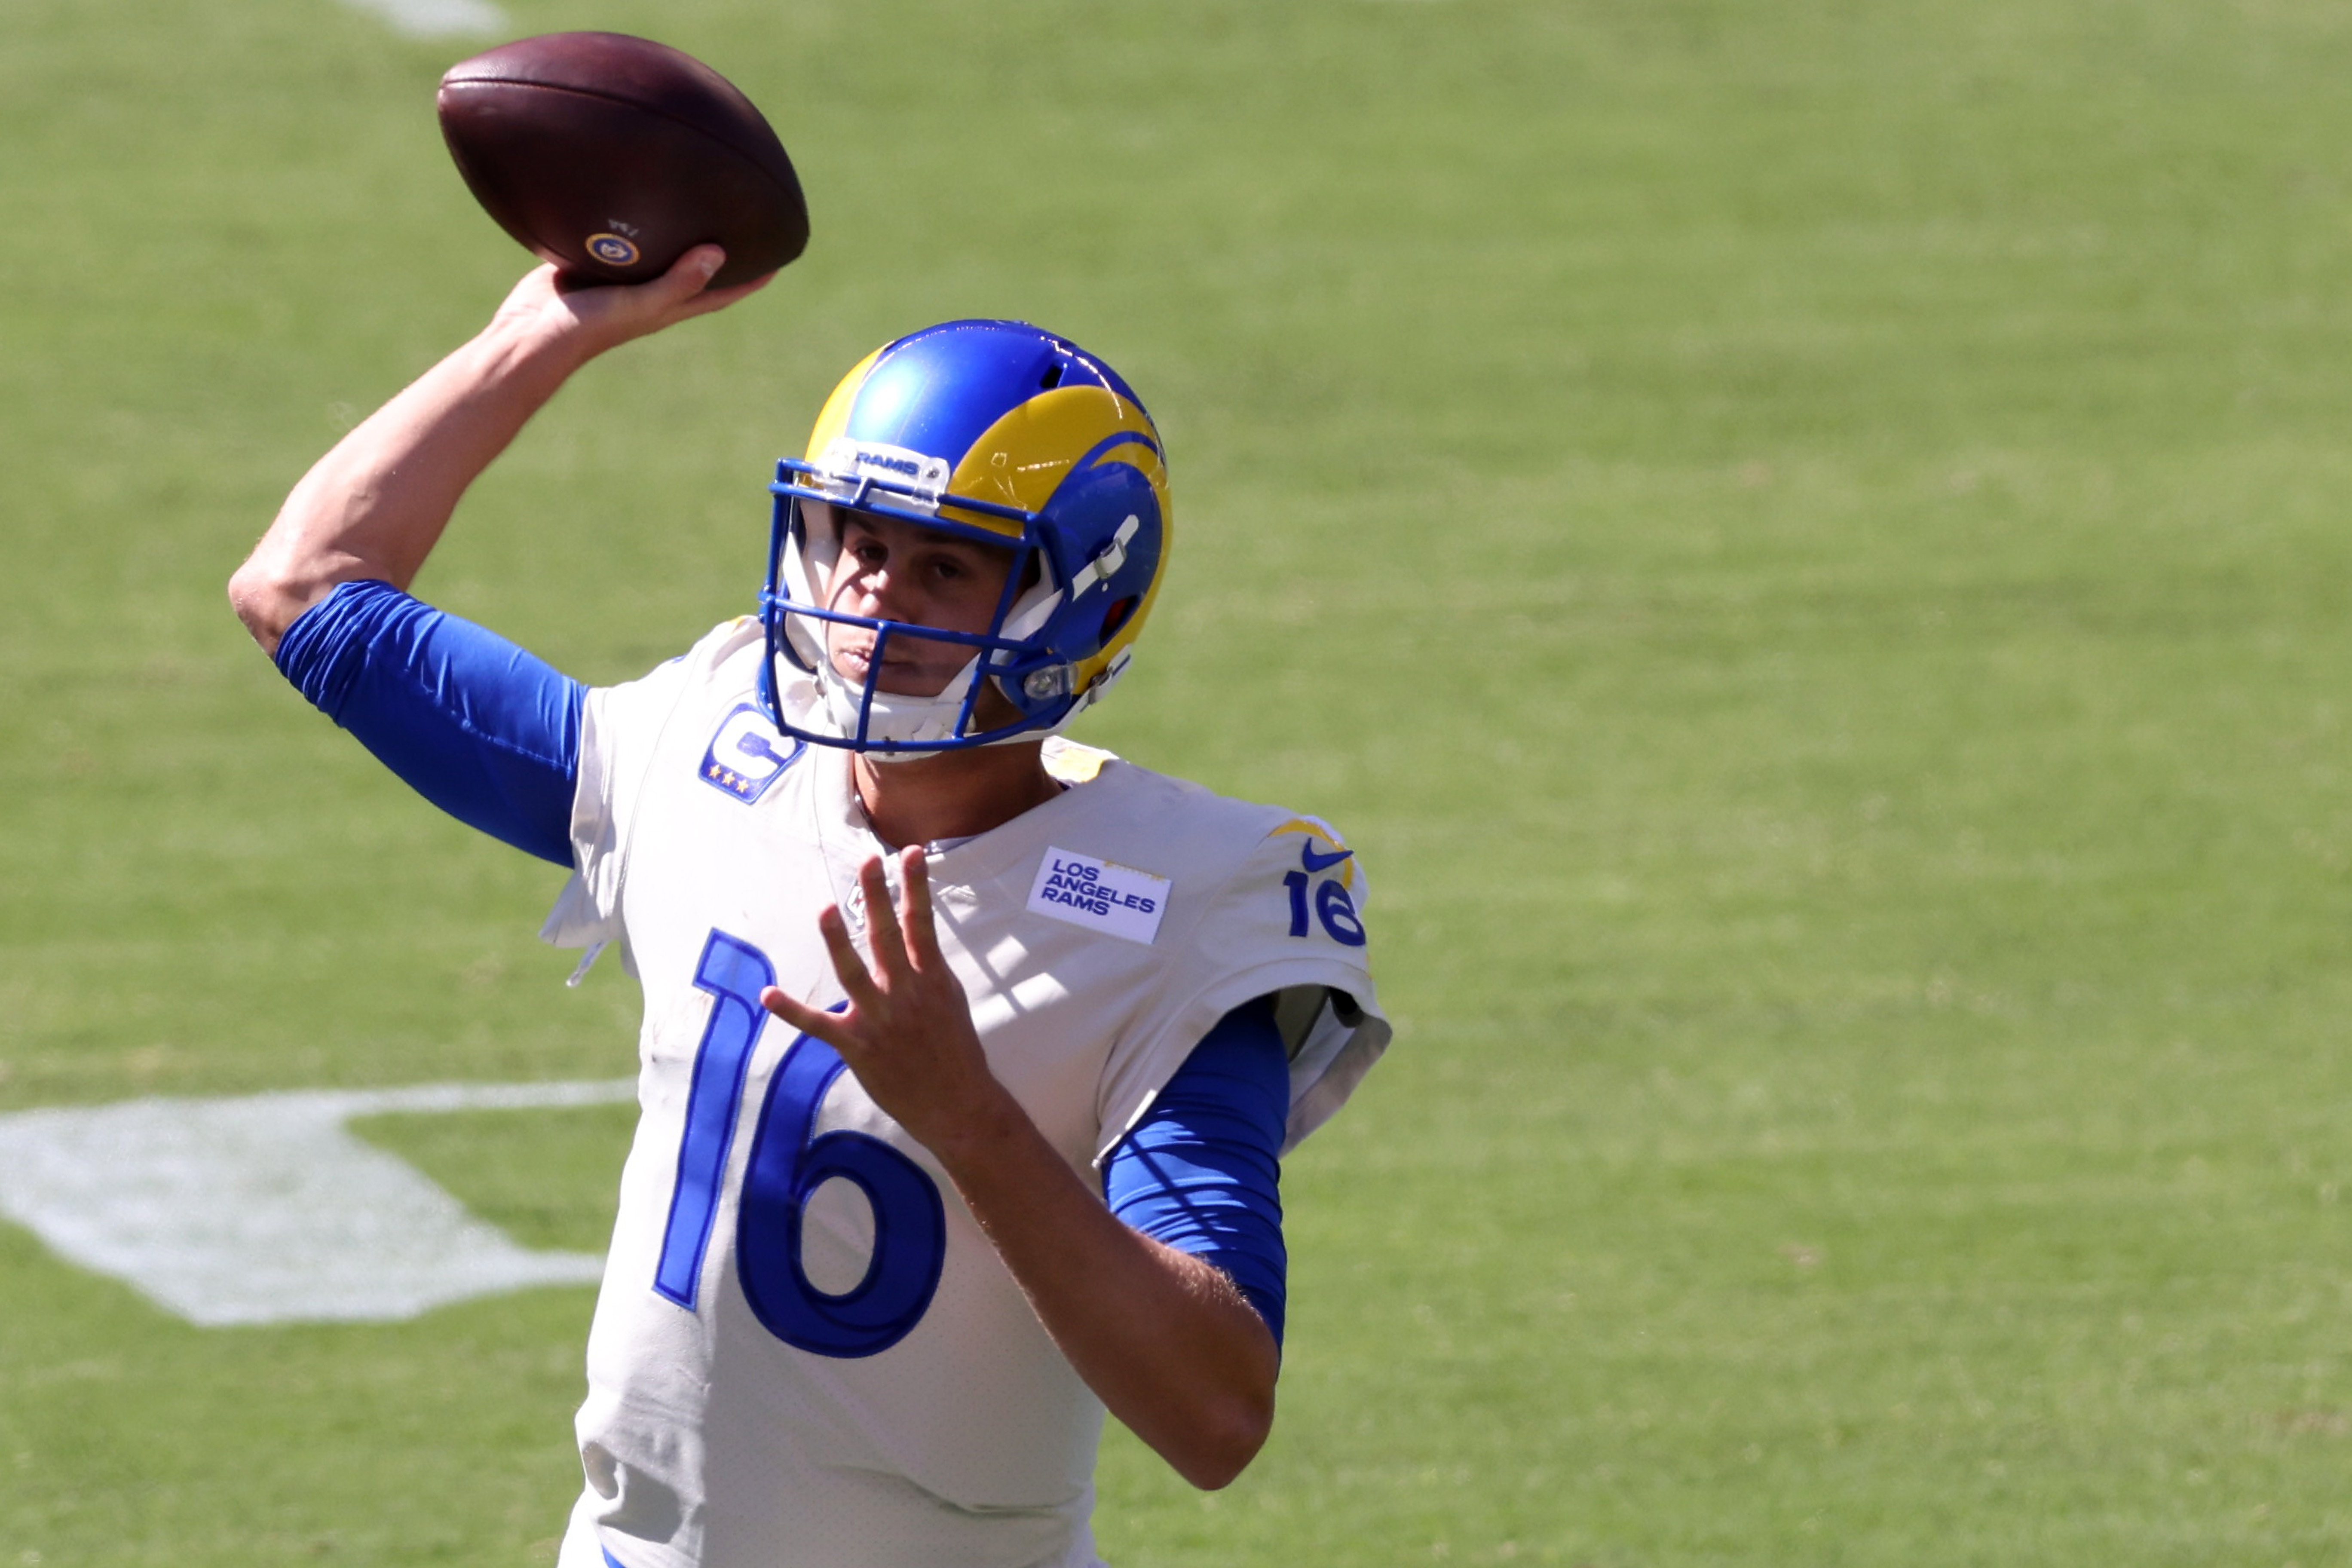 Los Angeles Rams quarterback Jared Goff is silencing his doubters with a strong start to the 2020 season.